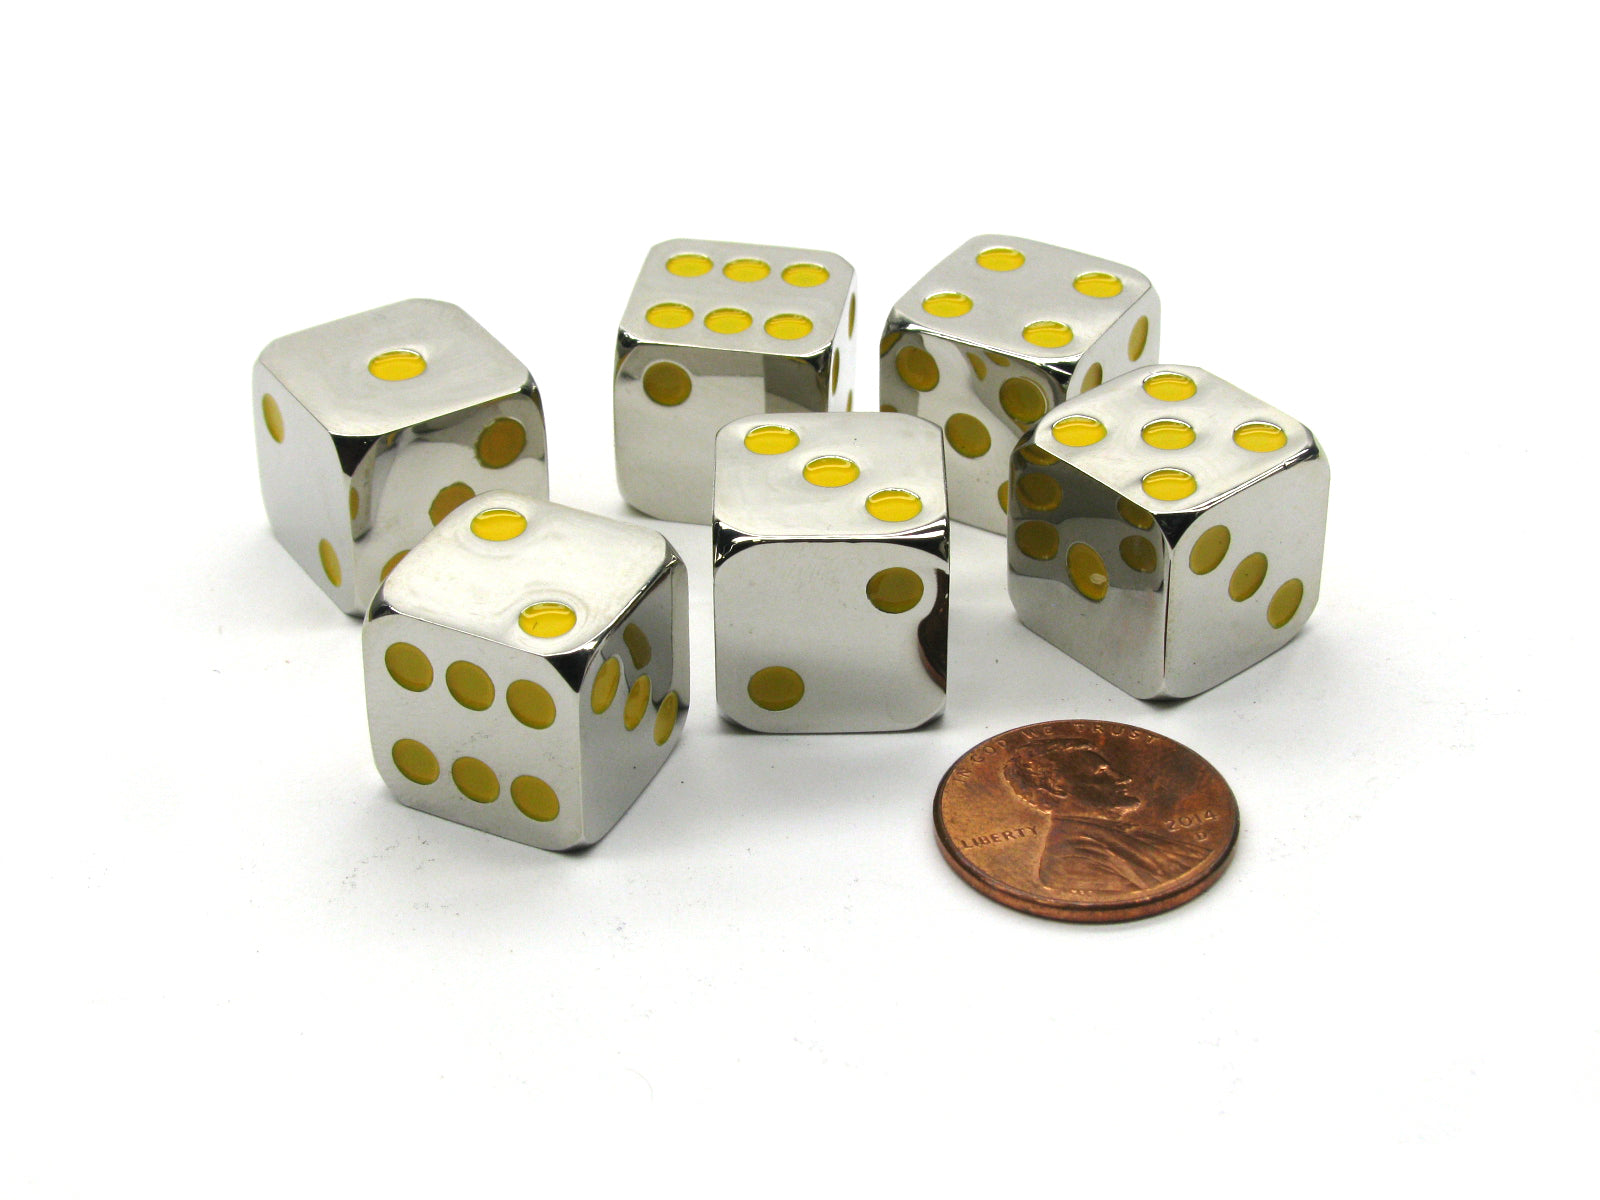 Box of 6 Zinc Metal Alloy D6 15mm Heavy Dice - Yellow Pips